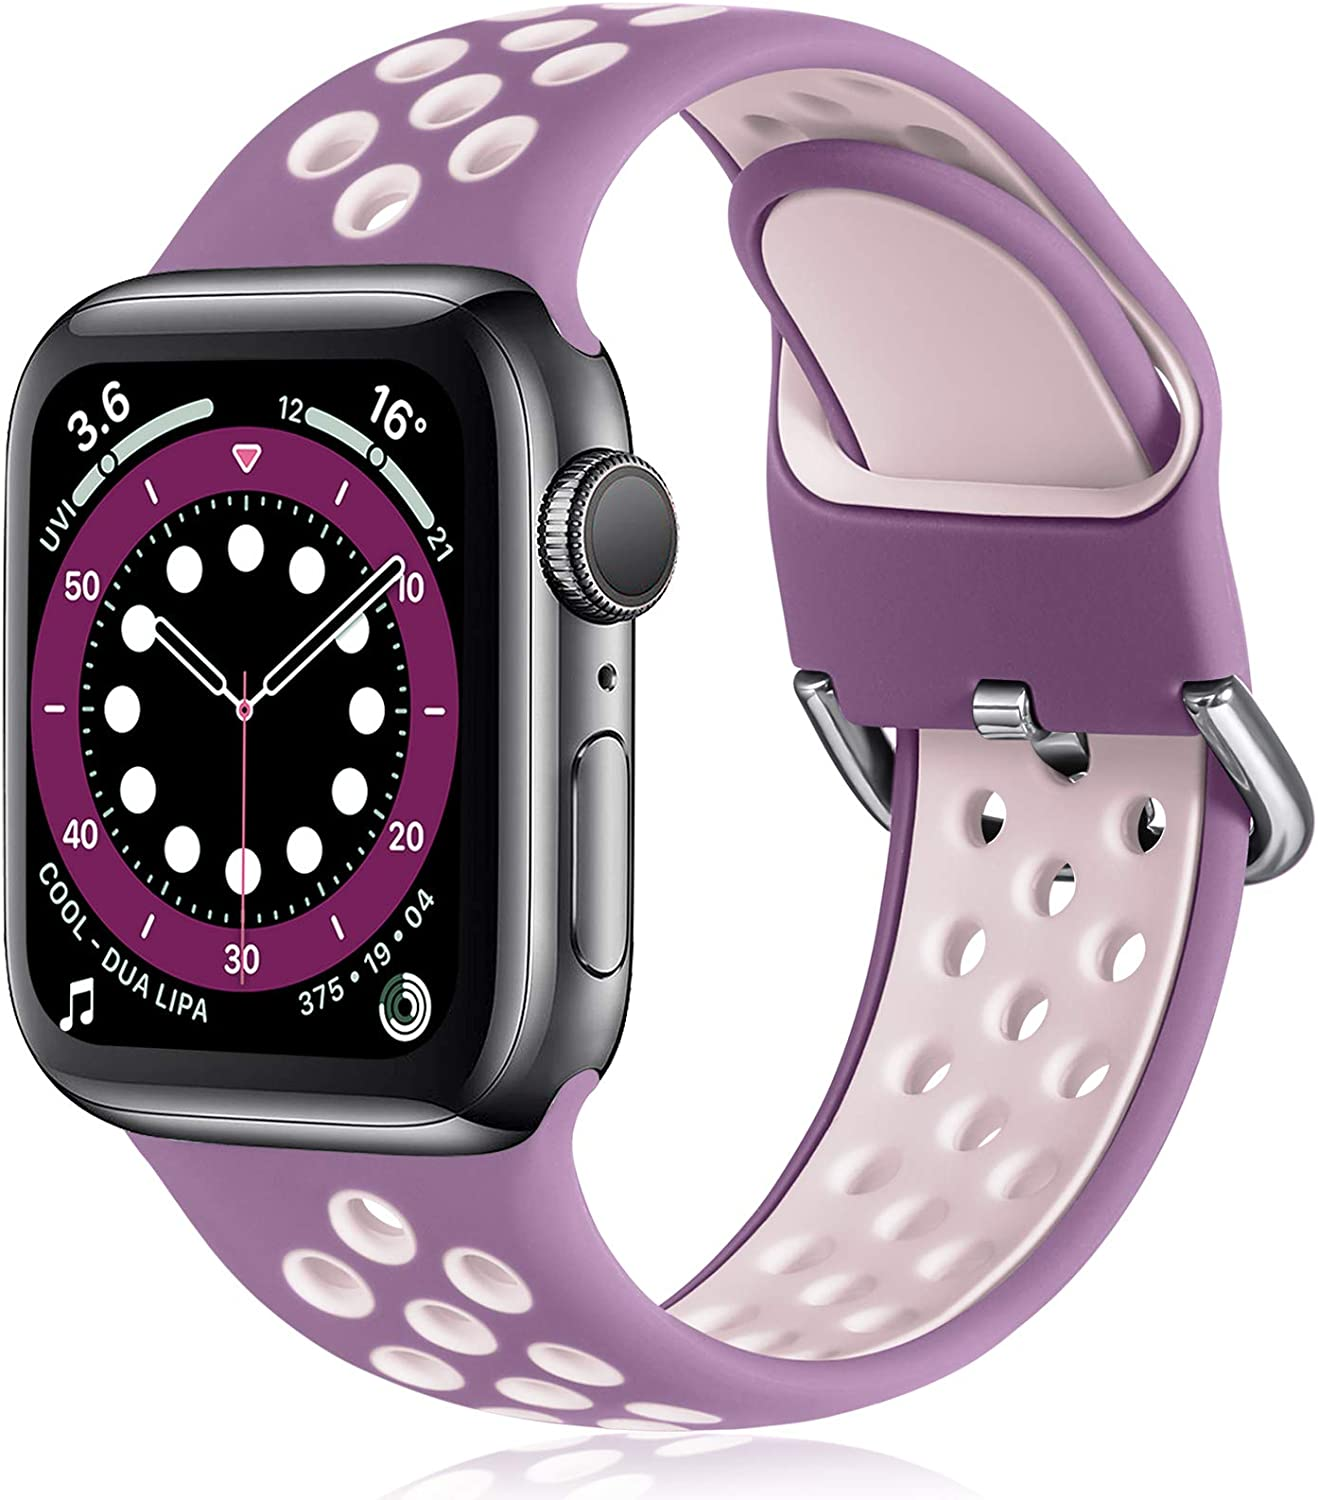 Witzon Compatible with Apple Watch Band 38mm 40mm Soft Silicone Waterproof Breathable Replacement Wristband Sport Bands for iWatch Series 1/2/3/4/5/6/SE Women Men, Purple Pink, S/M